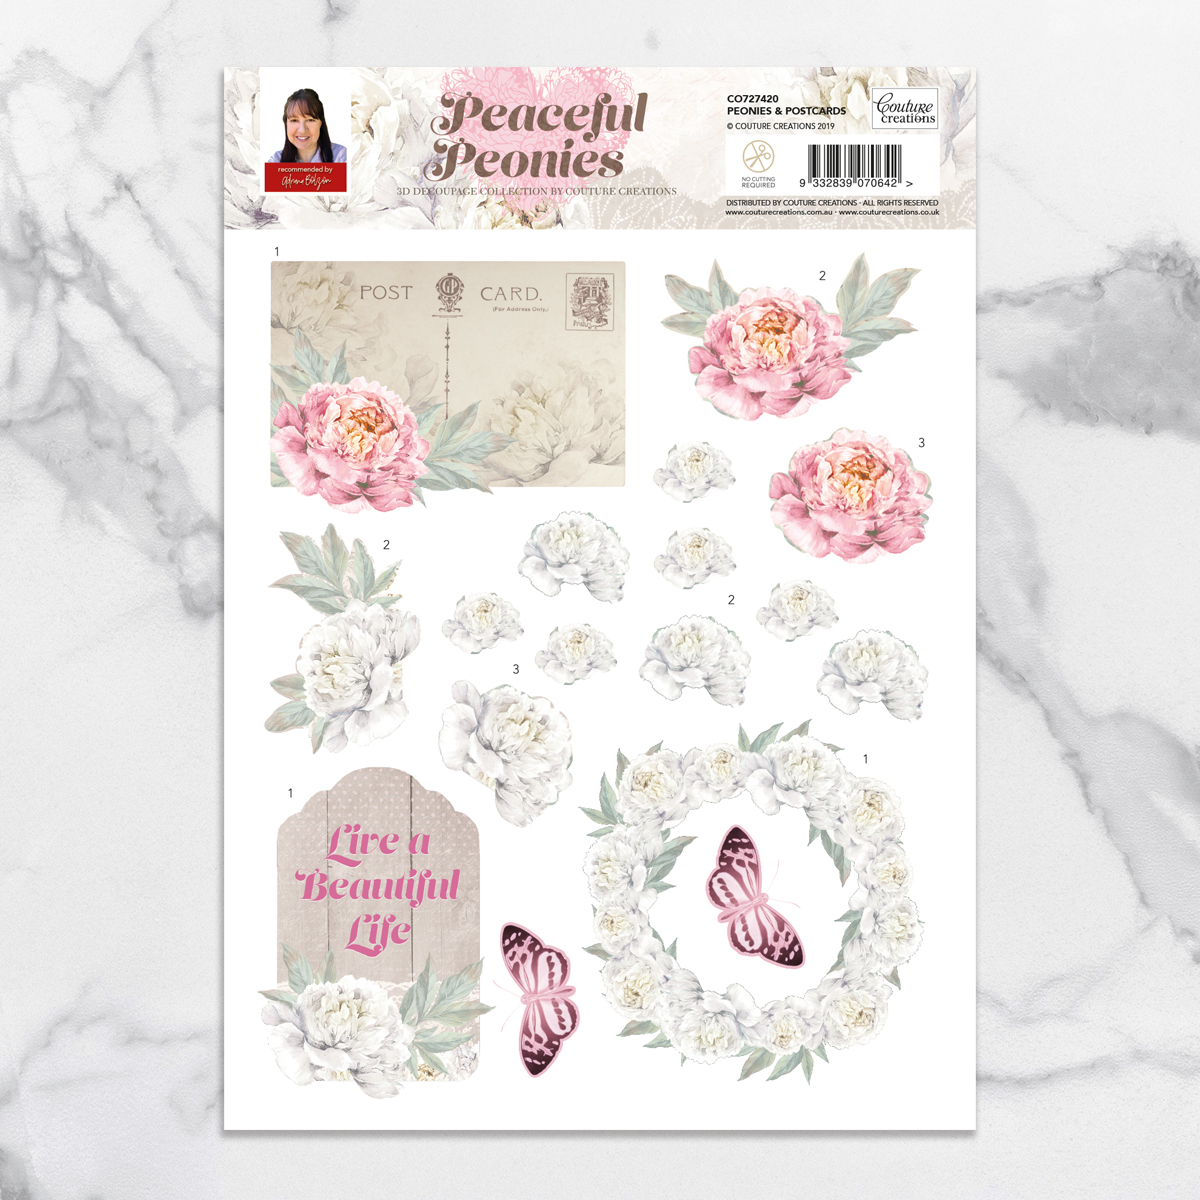 Couture Creations - Peaceful Peonies - Peonies & Postcards